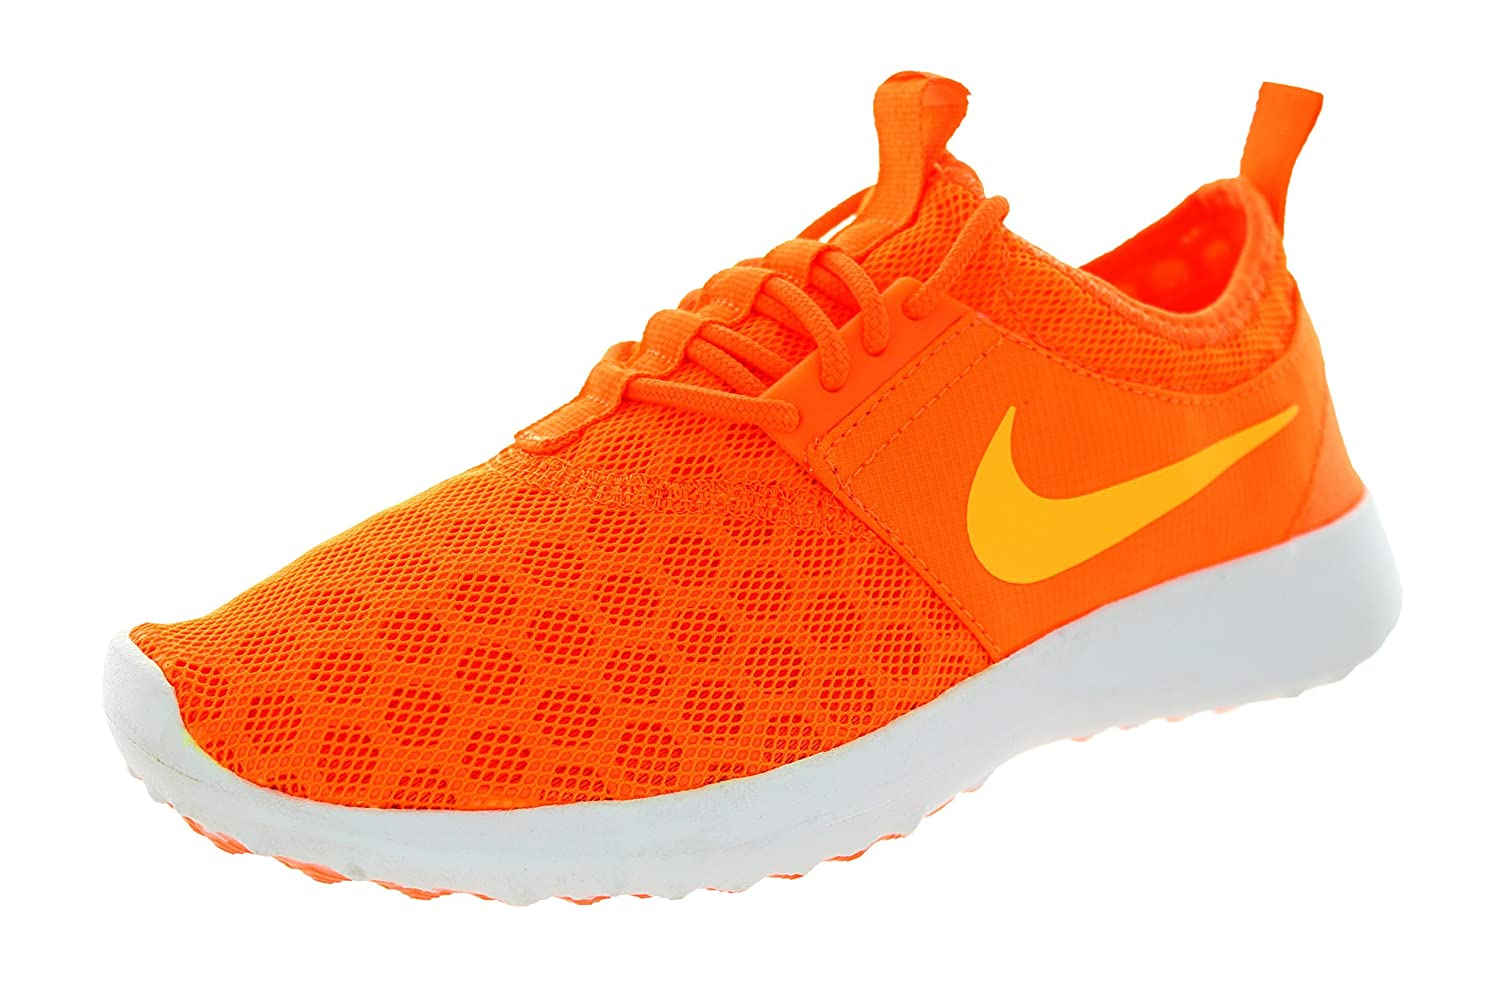 NIKE Women's Juvenate Running Shoe B00R54QCWY 9 B(M) US|Total Orange/Laser Orange/White